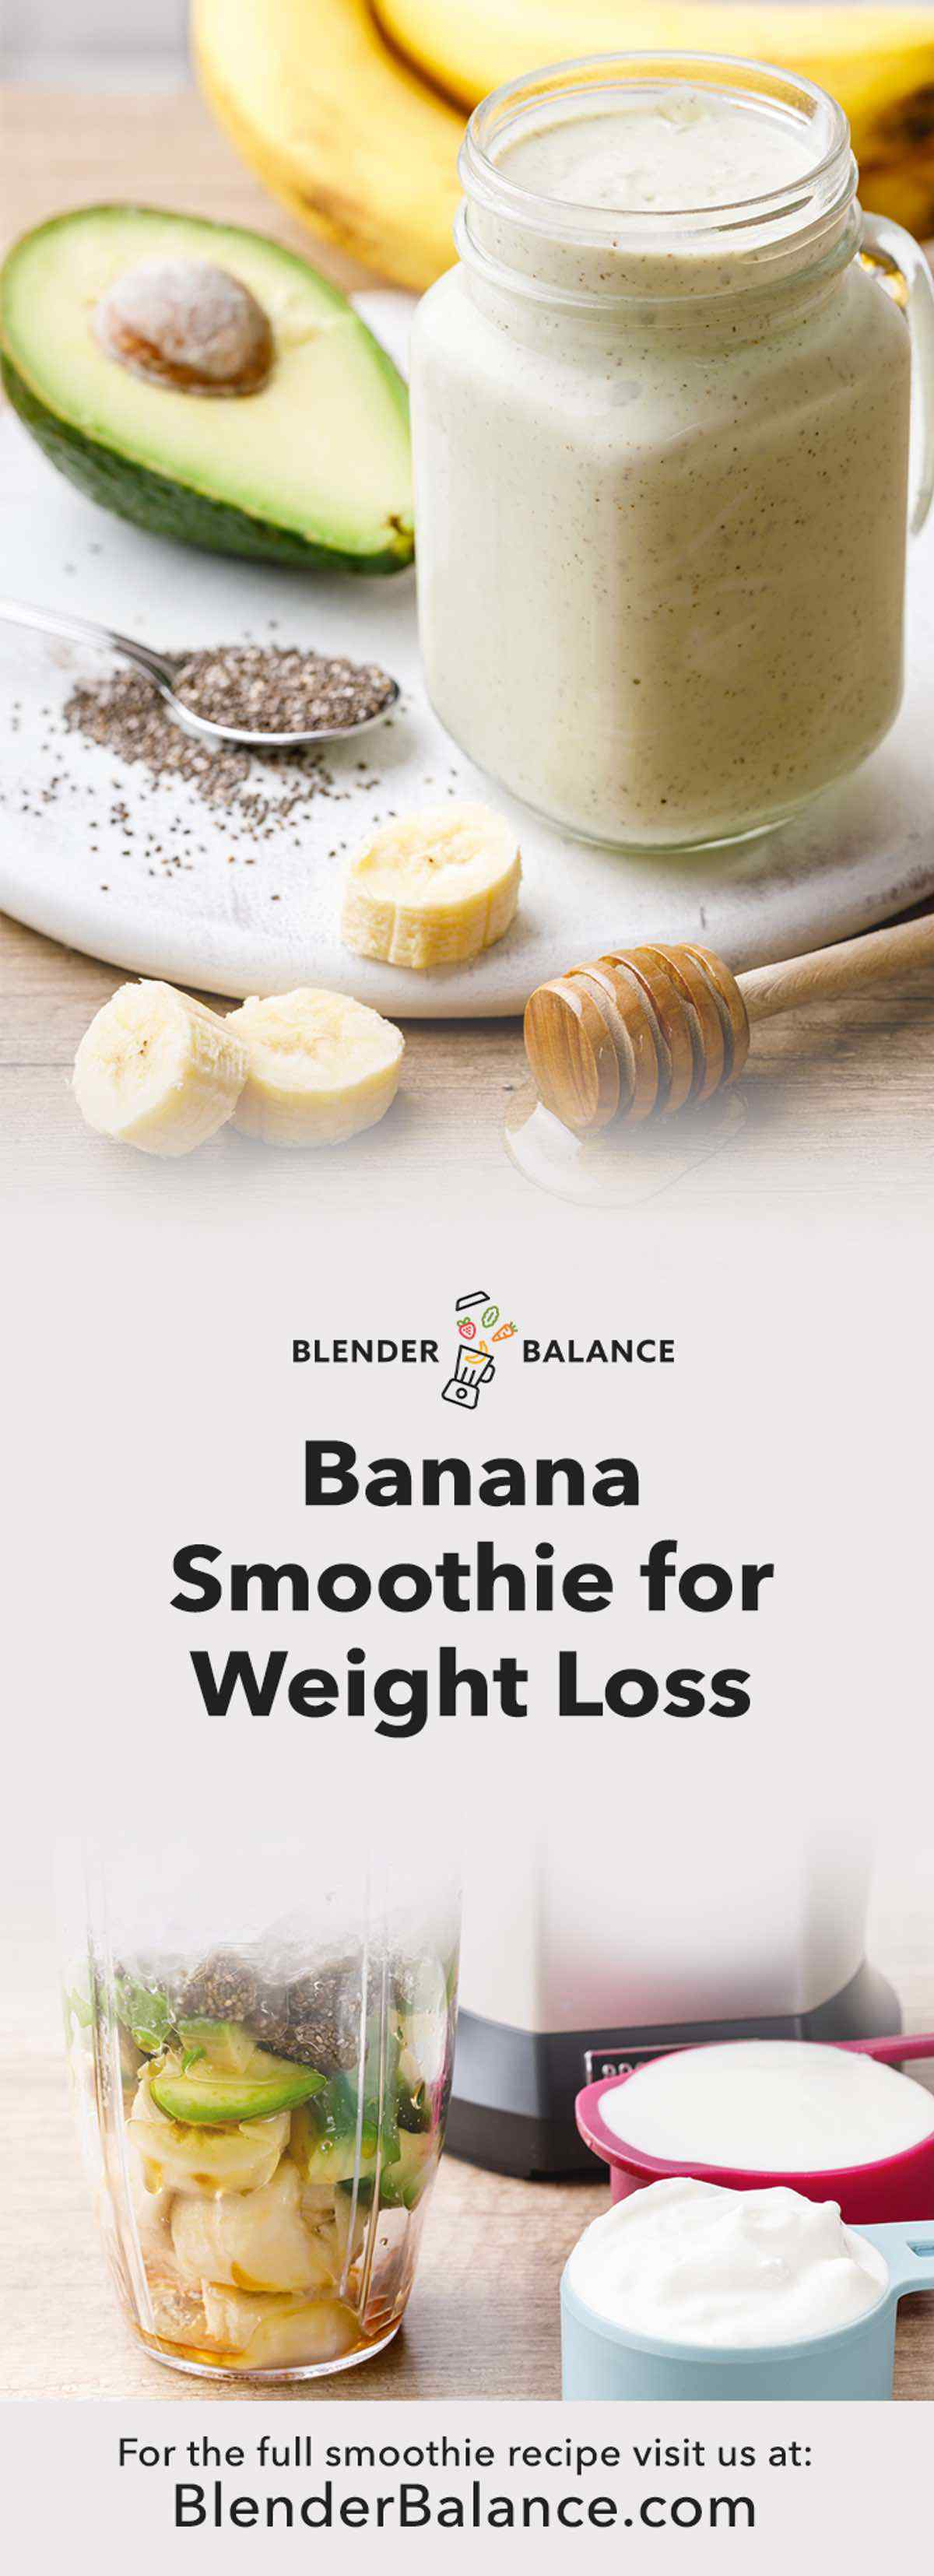 Banana Smoothie Recipe for Weight Loss